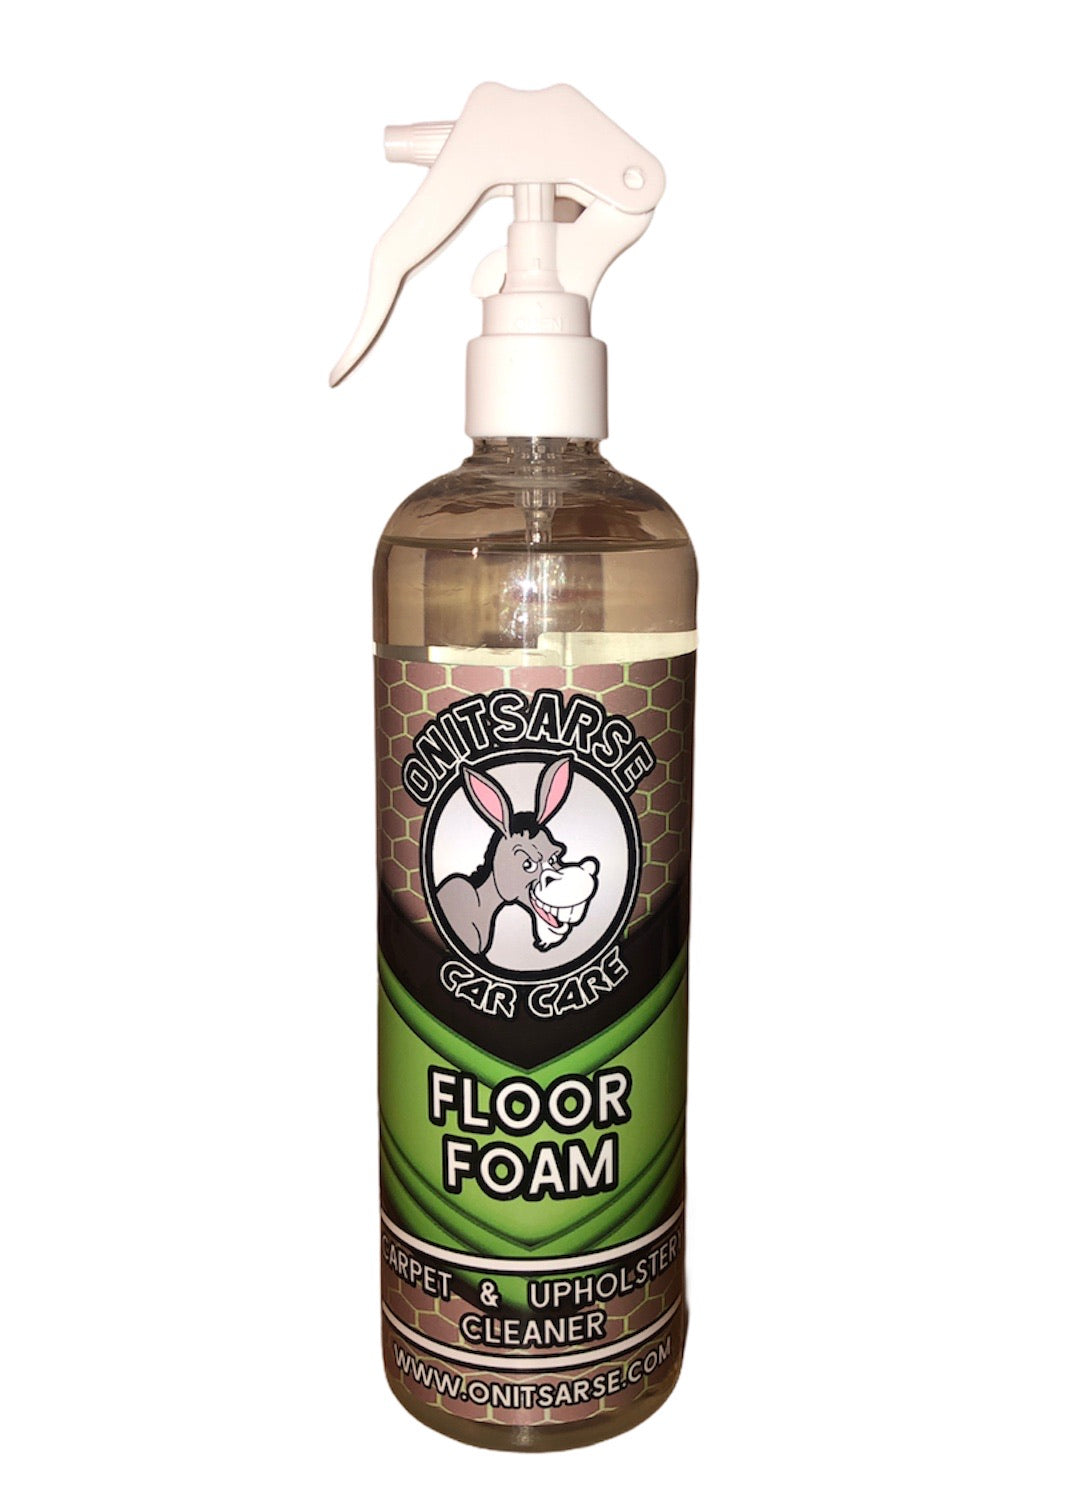 Floor Foam (Carpet & Upholstery Cleaner)